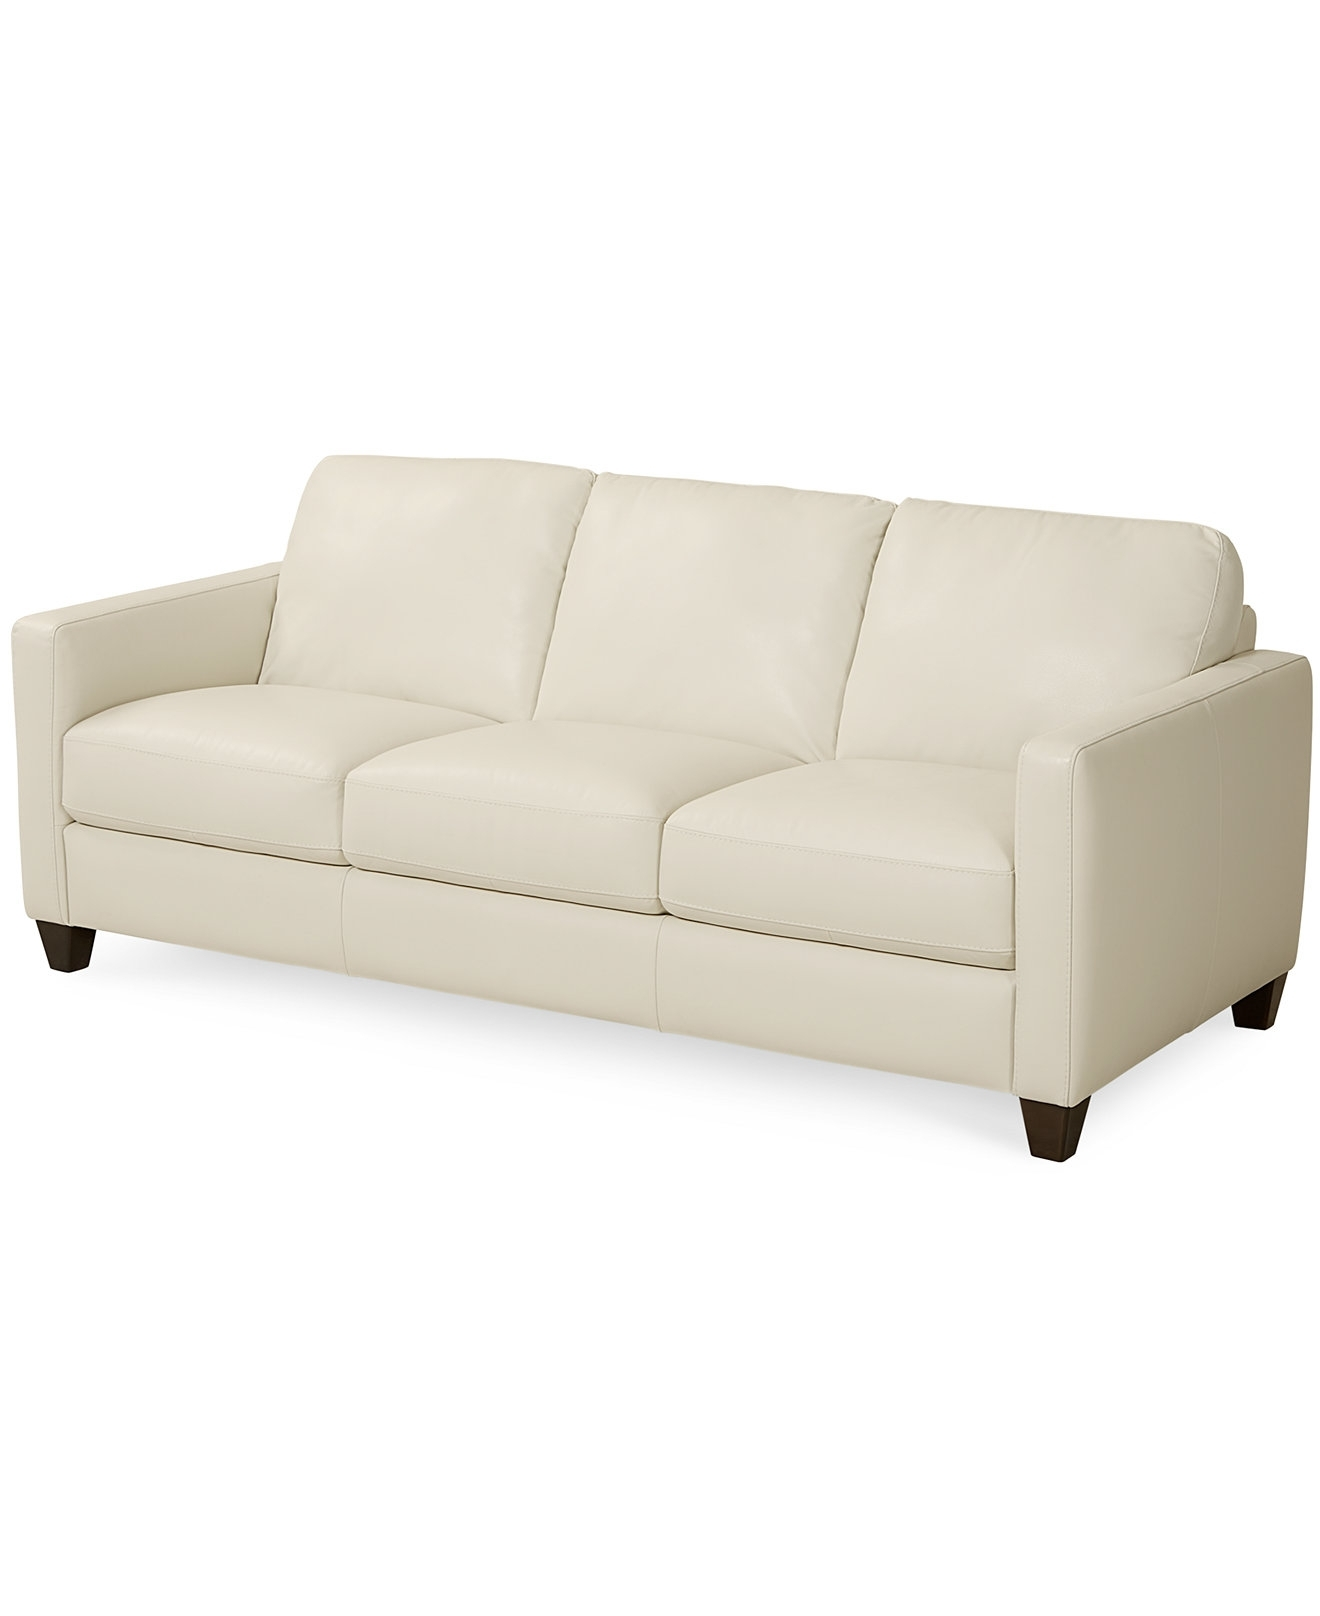 Most Up To Date Macys Leather Sofa – Mforum With Regard To Macys Leather Sofas (View 9 of 15)